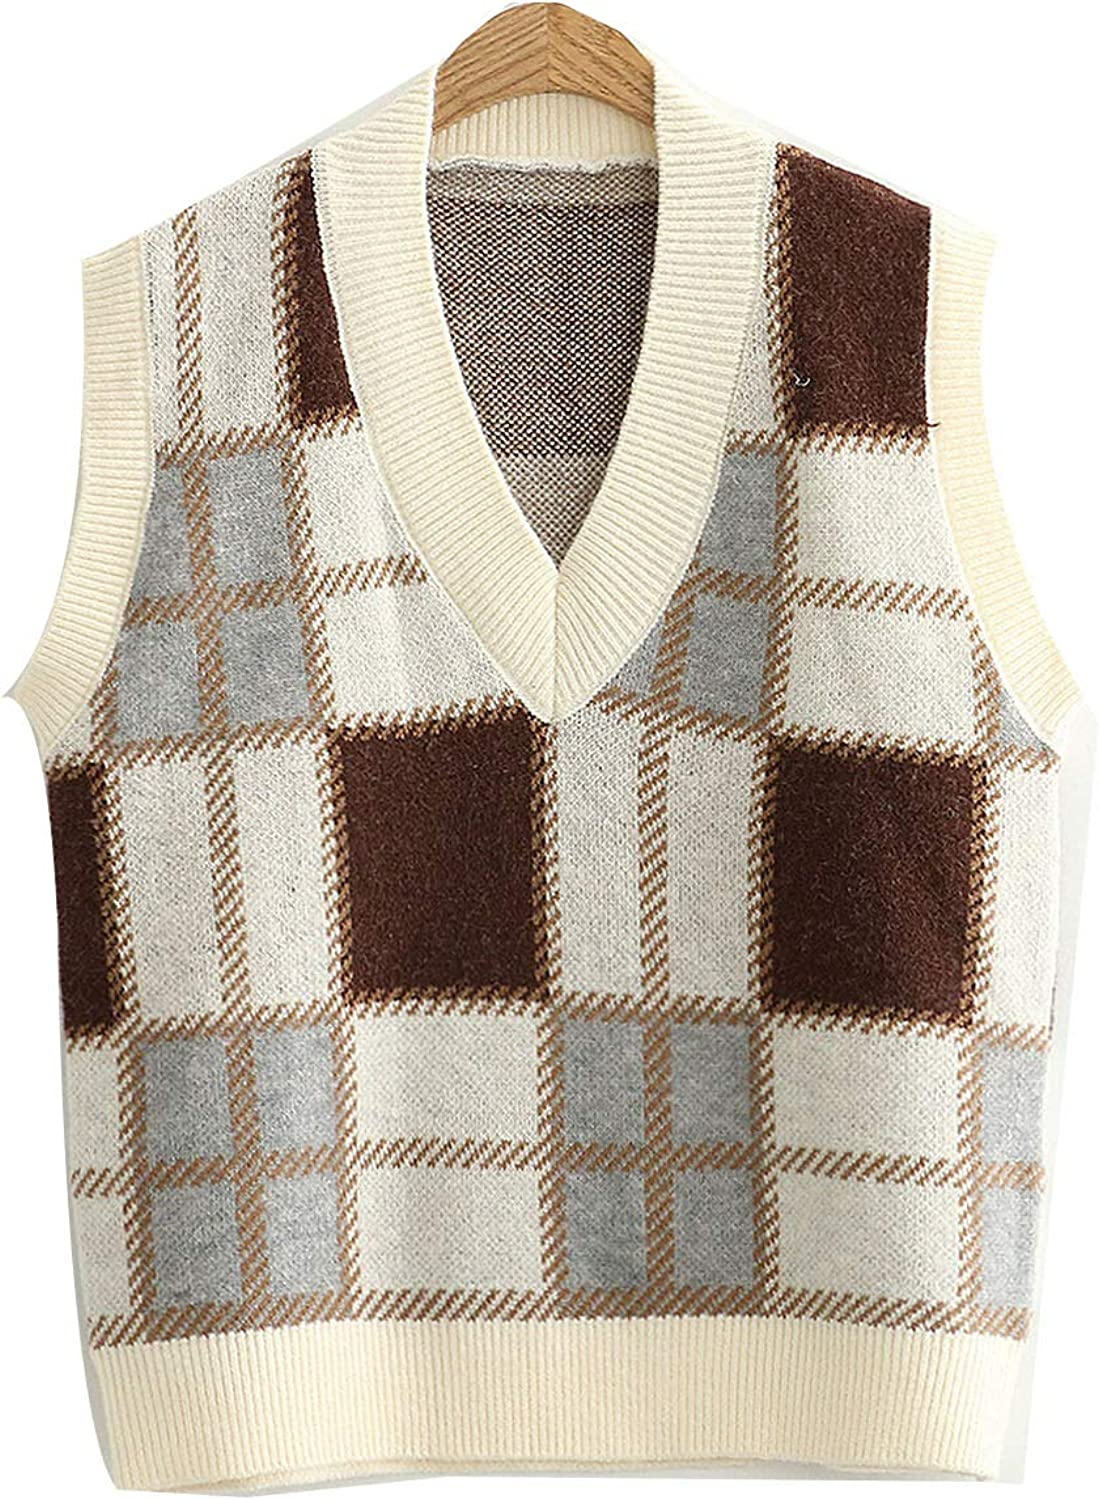 Women Plaid Sleeveless Sweater Vest Casual Loose V-Neck Student Knitwear Pullover